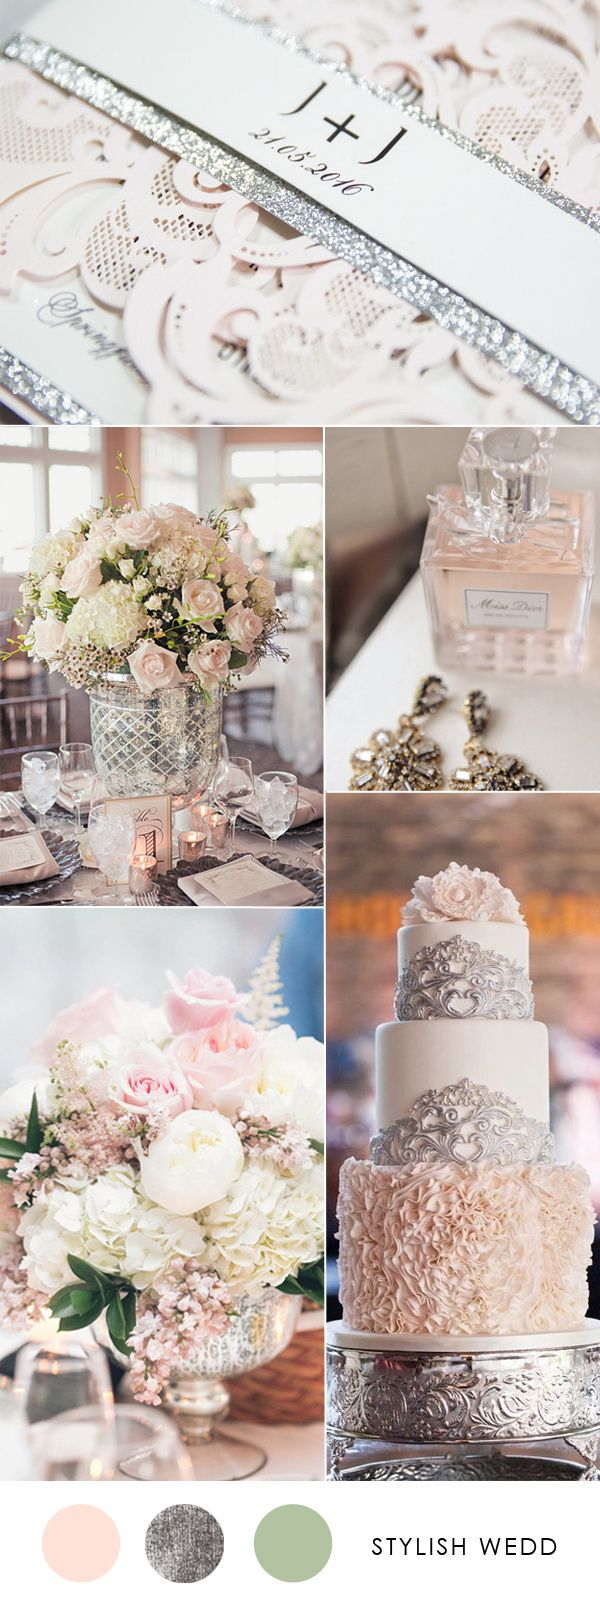 elegant blush and silver wedding ideas with matched wedding invites  #RePin by AT Social Media Marketing - Pinterest Marketing Specialists ATSocialMedia.co.uk